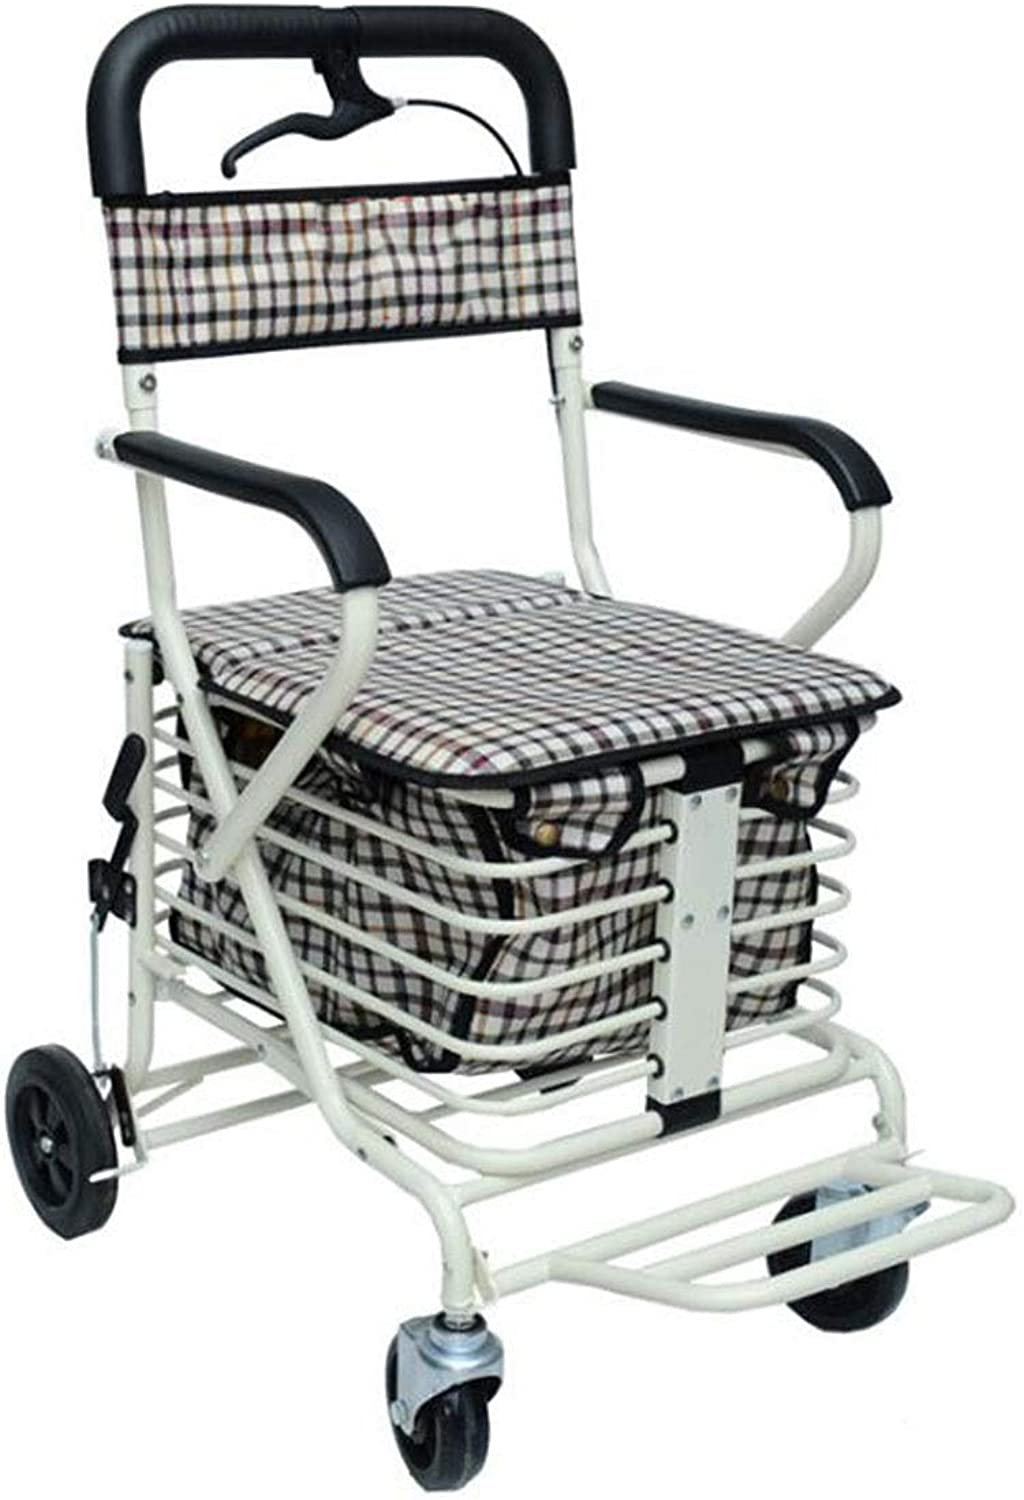 Adjustable Walker Four-Legged Cane Lockable Brake Walker Cane Old Man Auxiliary Walker with Seat with Shopping Basket (color   Natural, Size   C)